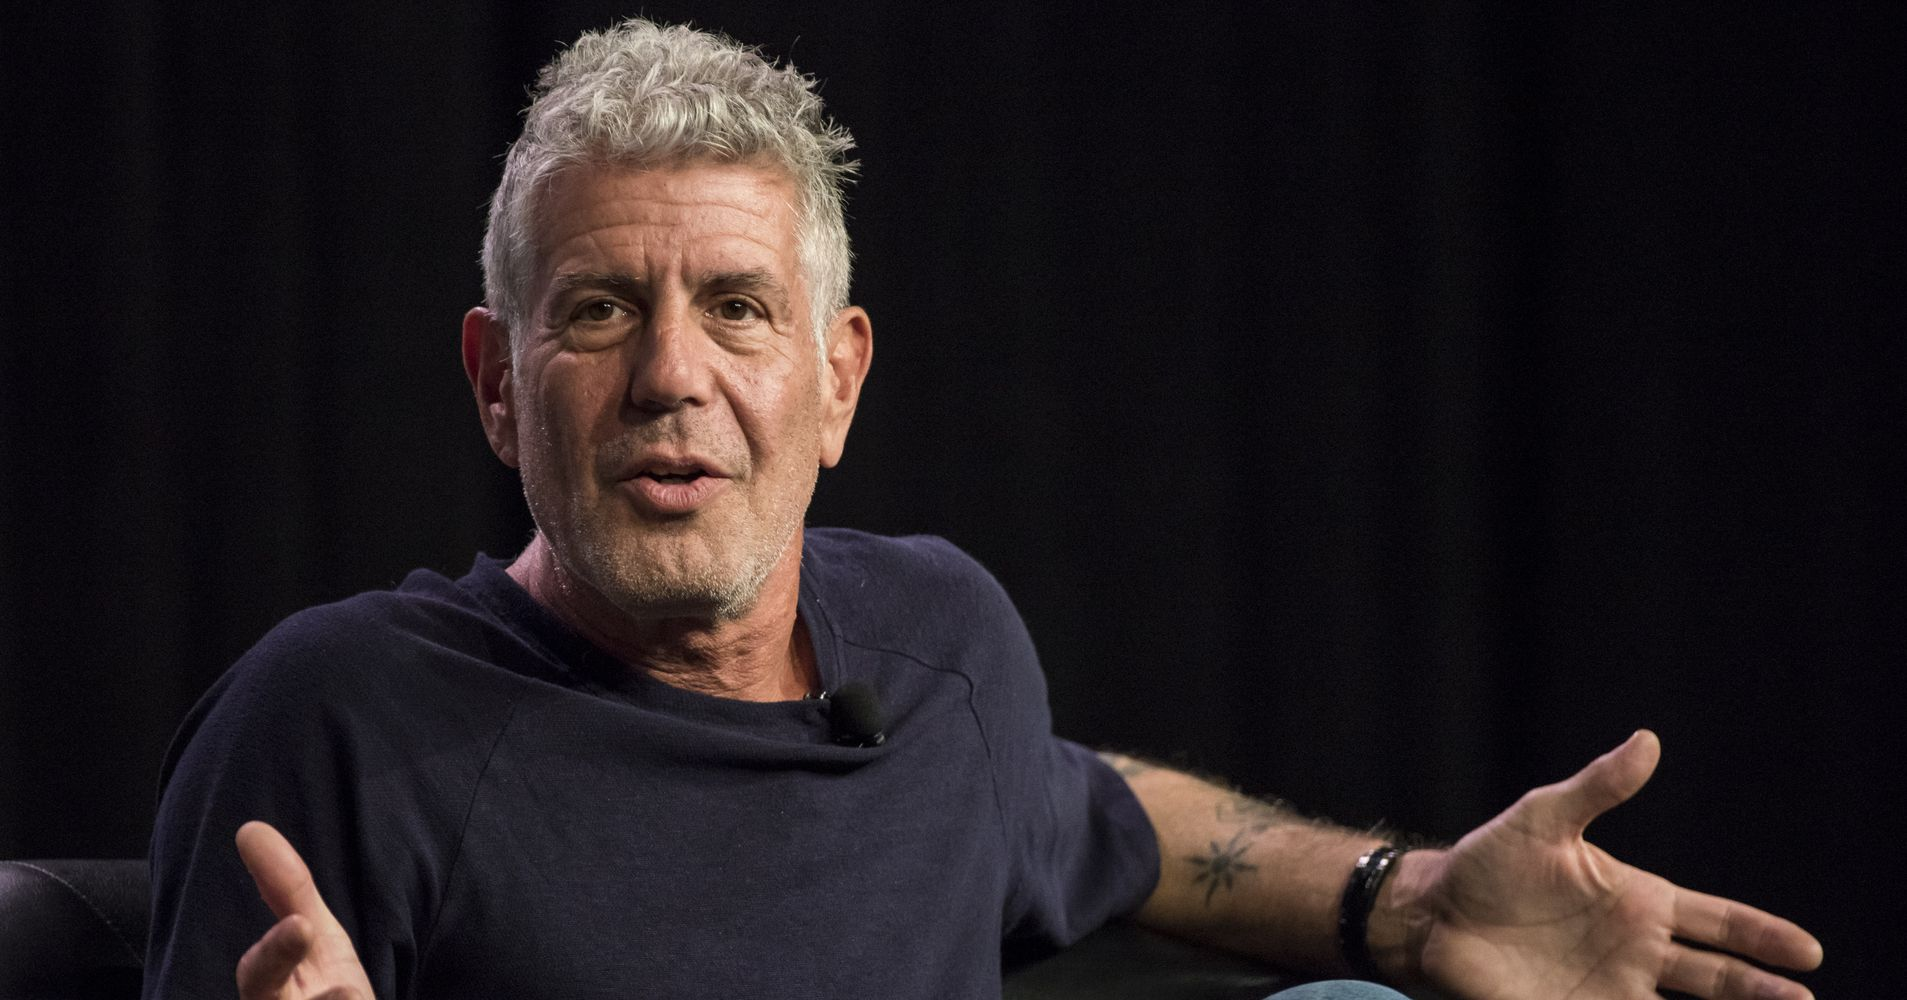 Twitter Mourns Anthony Bourdain With Memories Of Adventures He Inspired